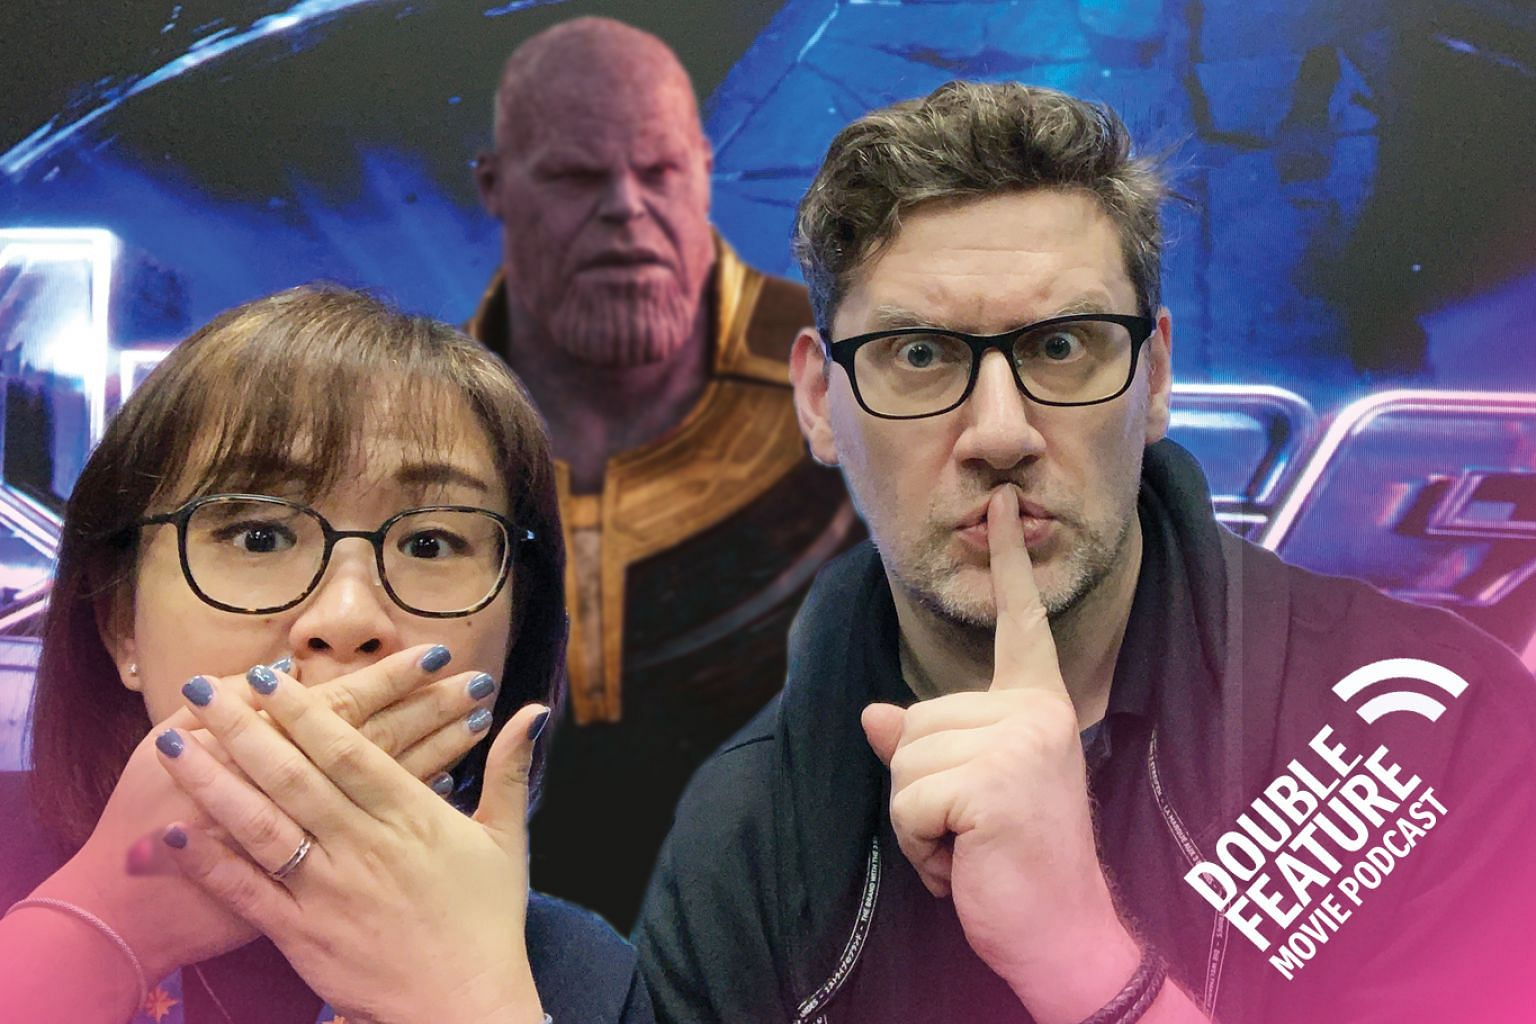 Avengers Endgame movie review, Double Feature Movie Podcast, The Straits Times